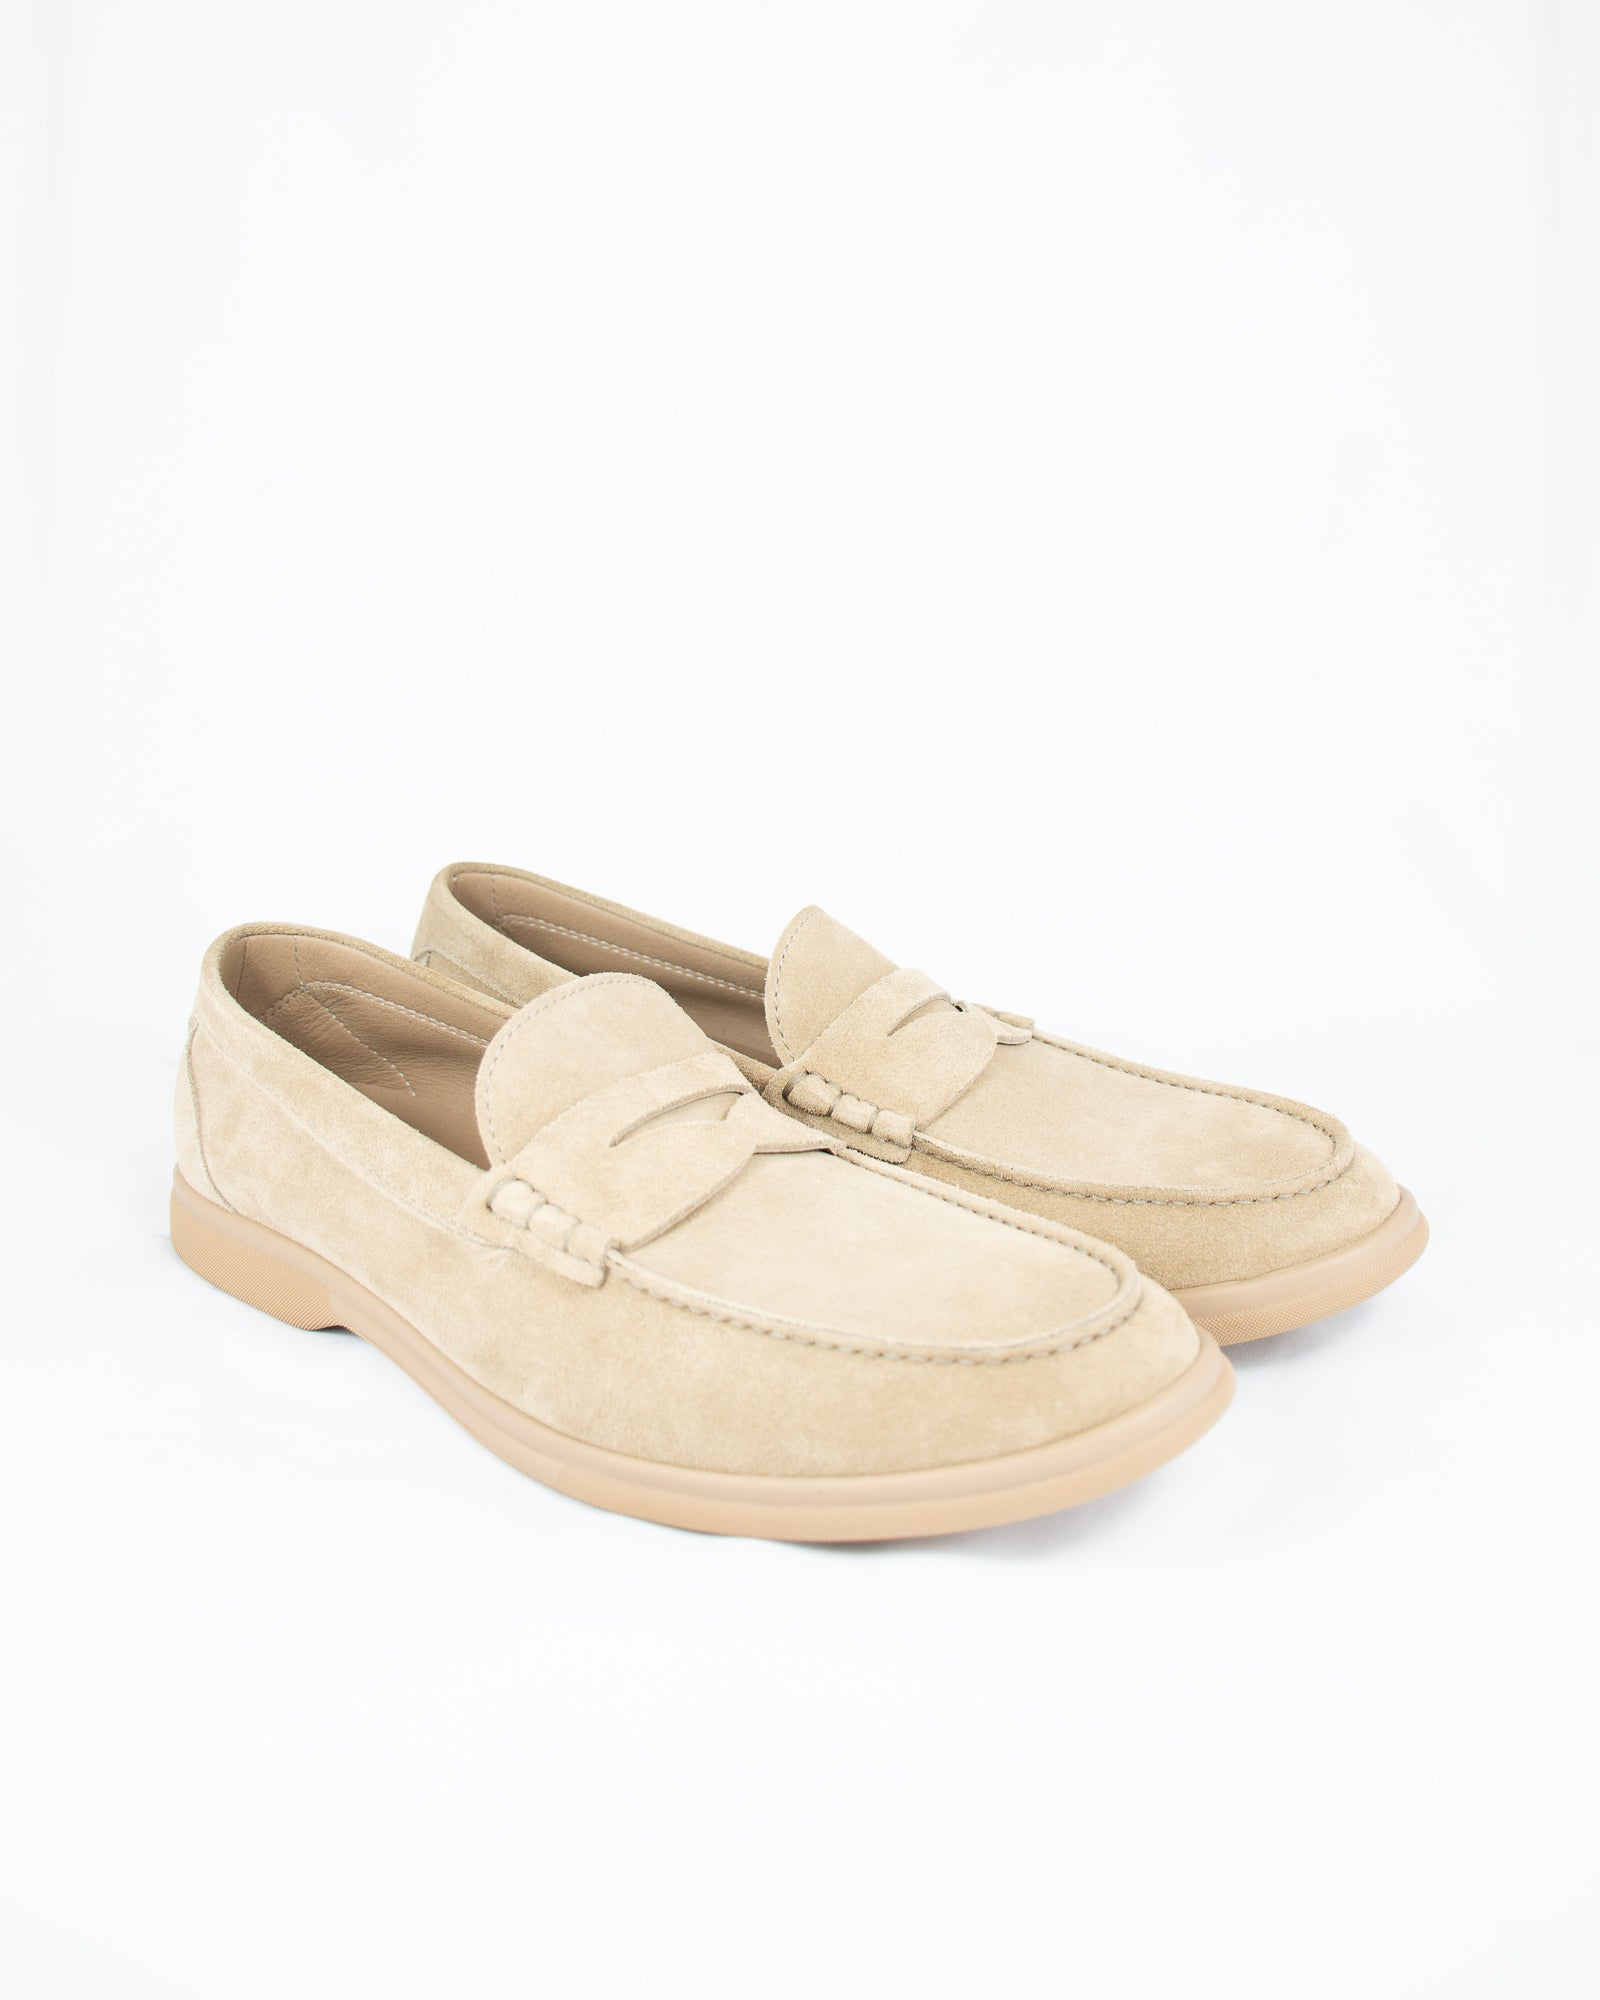 BRUNELLO CUCINELLI Suede Loafer